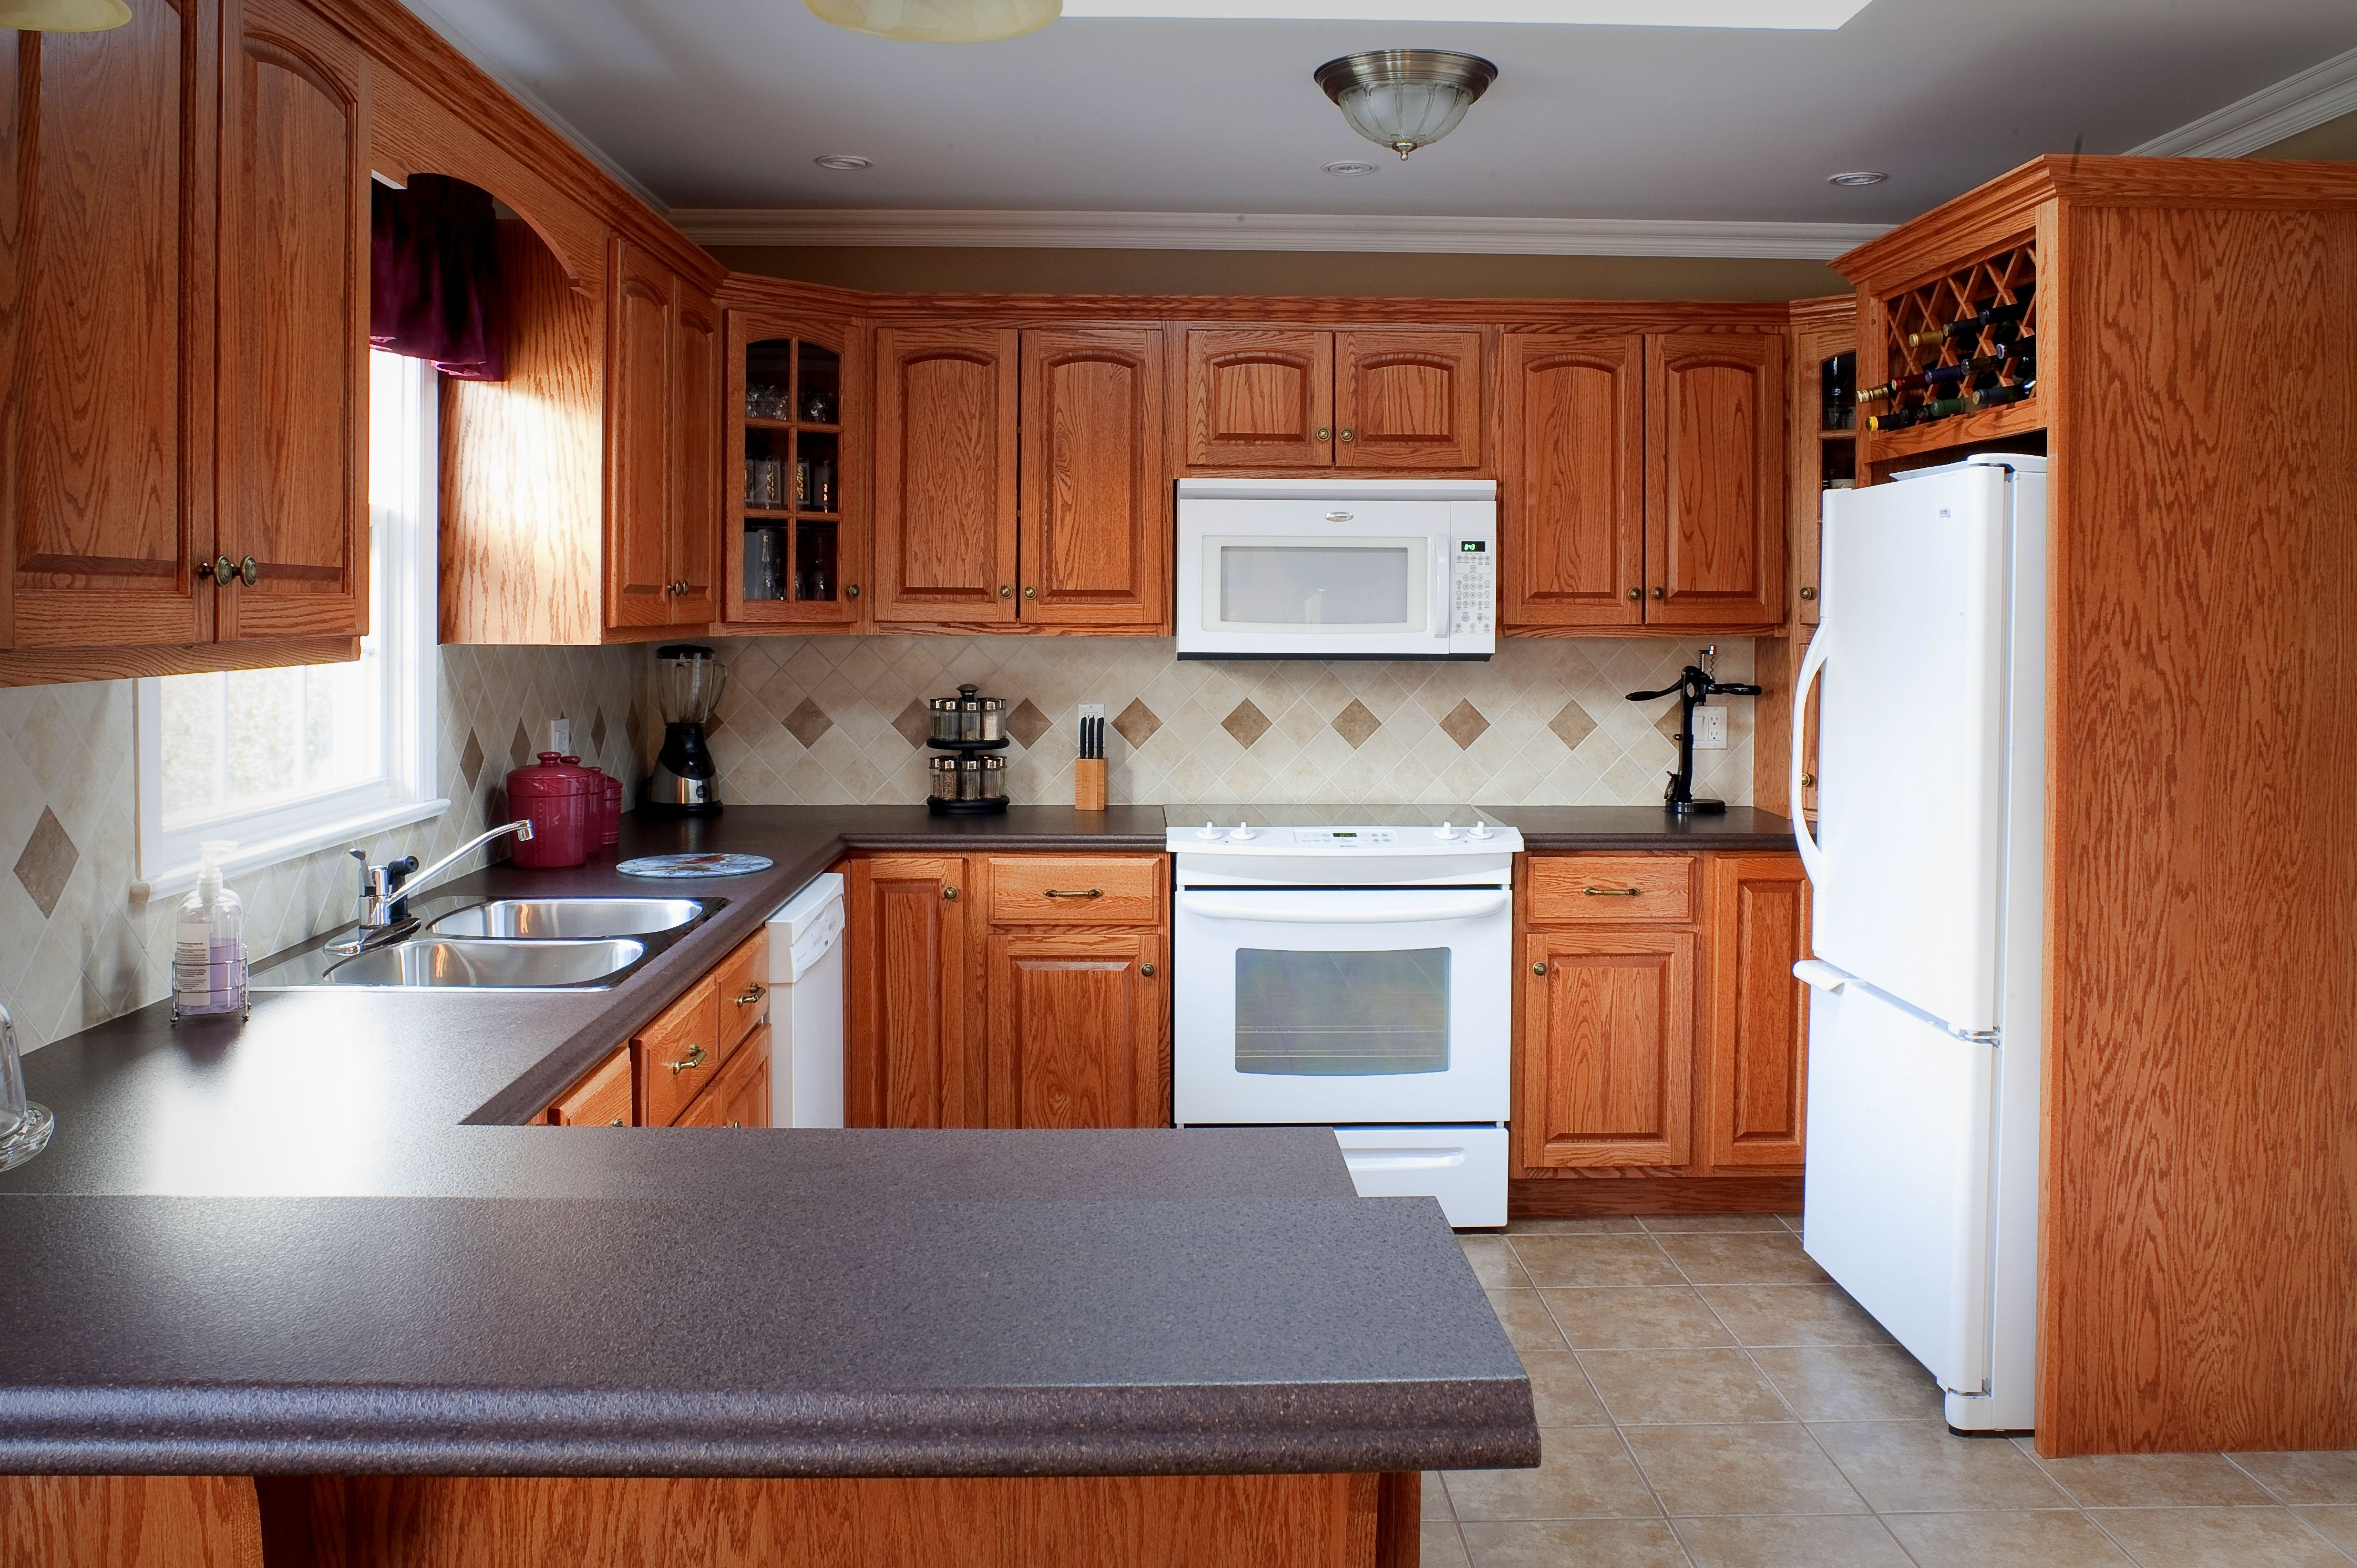 Island Cabinet Shop Quality Built Kitchen Cabinets Supplied By Hubcraft Timber Mart Cozinhas